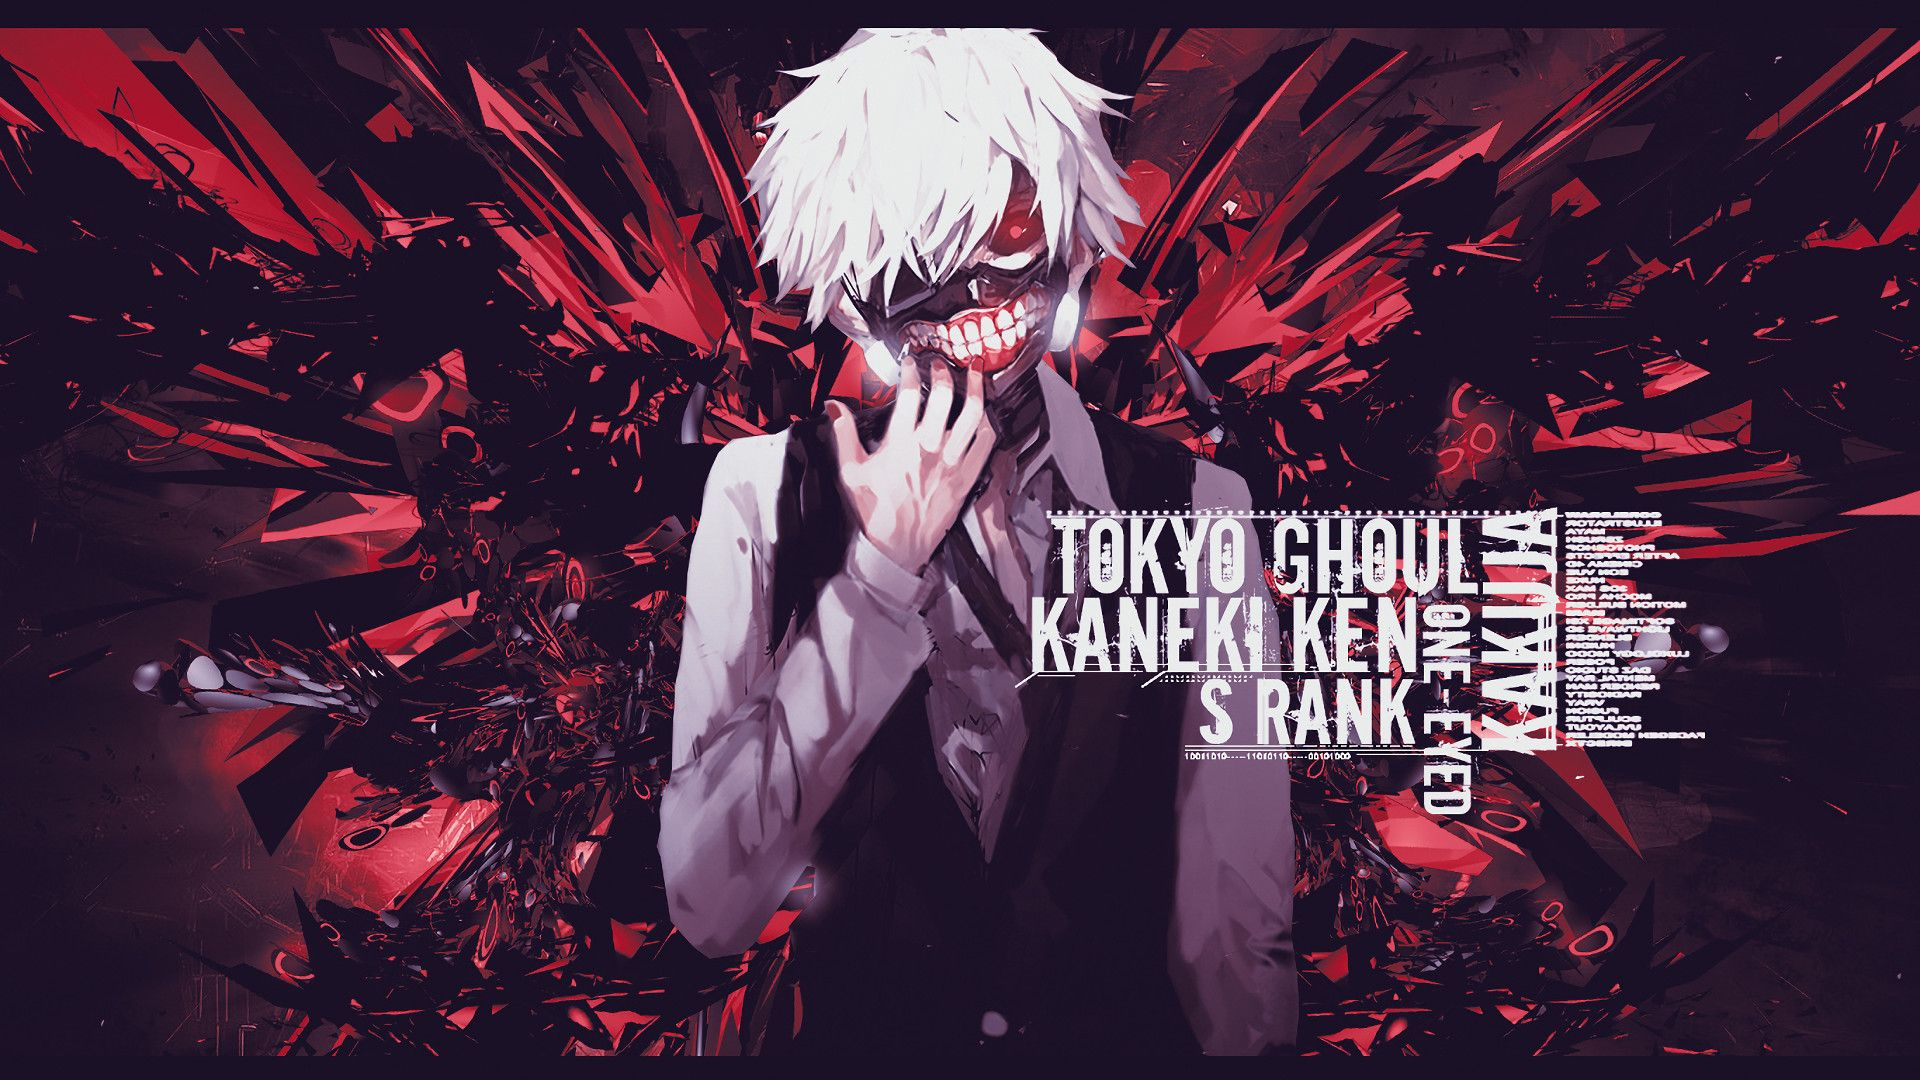 Hd Anime Tokyo Ghoul Wallpapers Wallpaper Cave